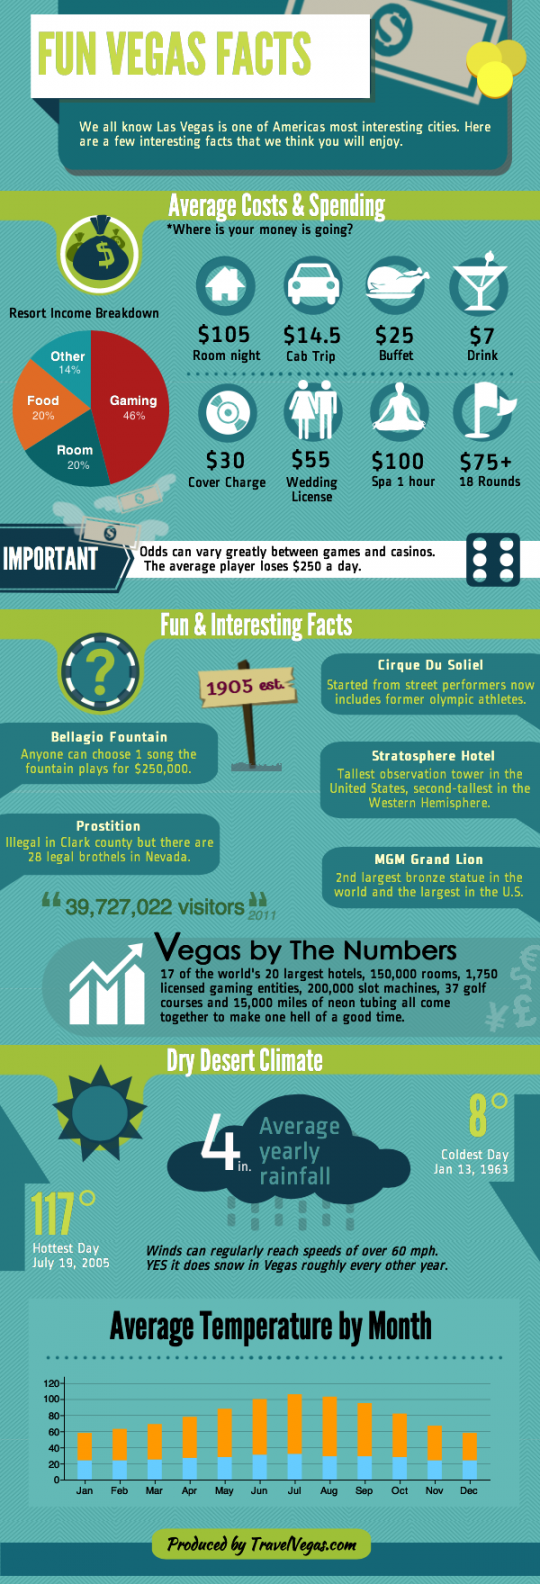 Fun Las Vegas Facts